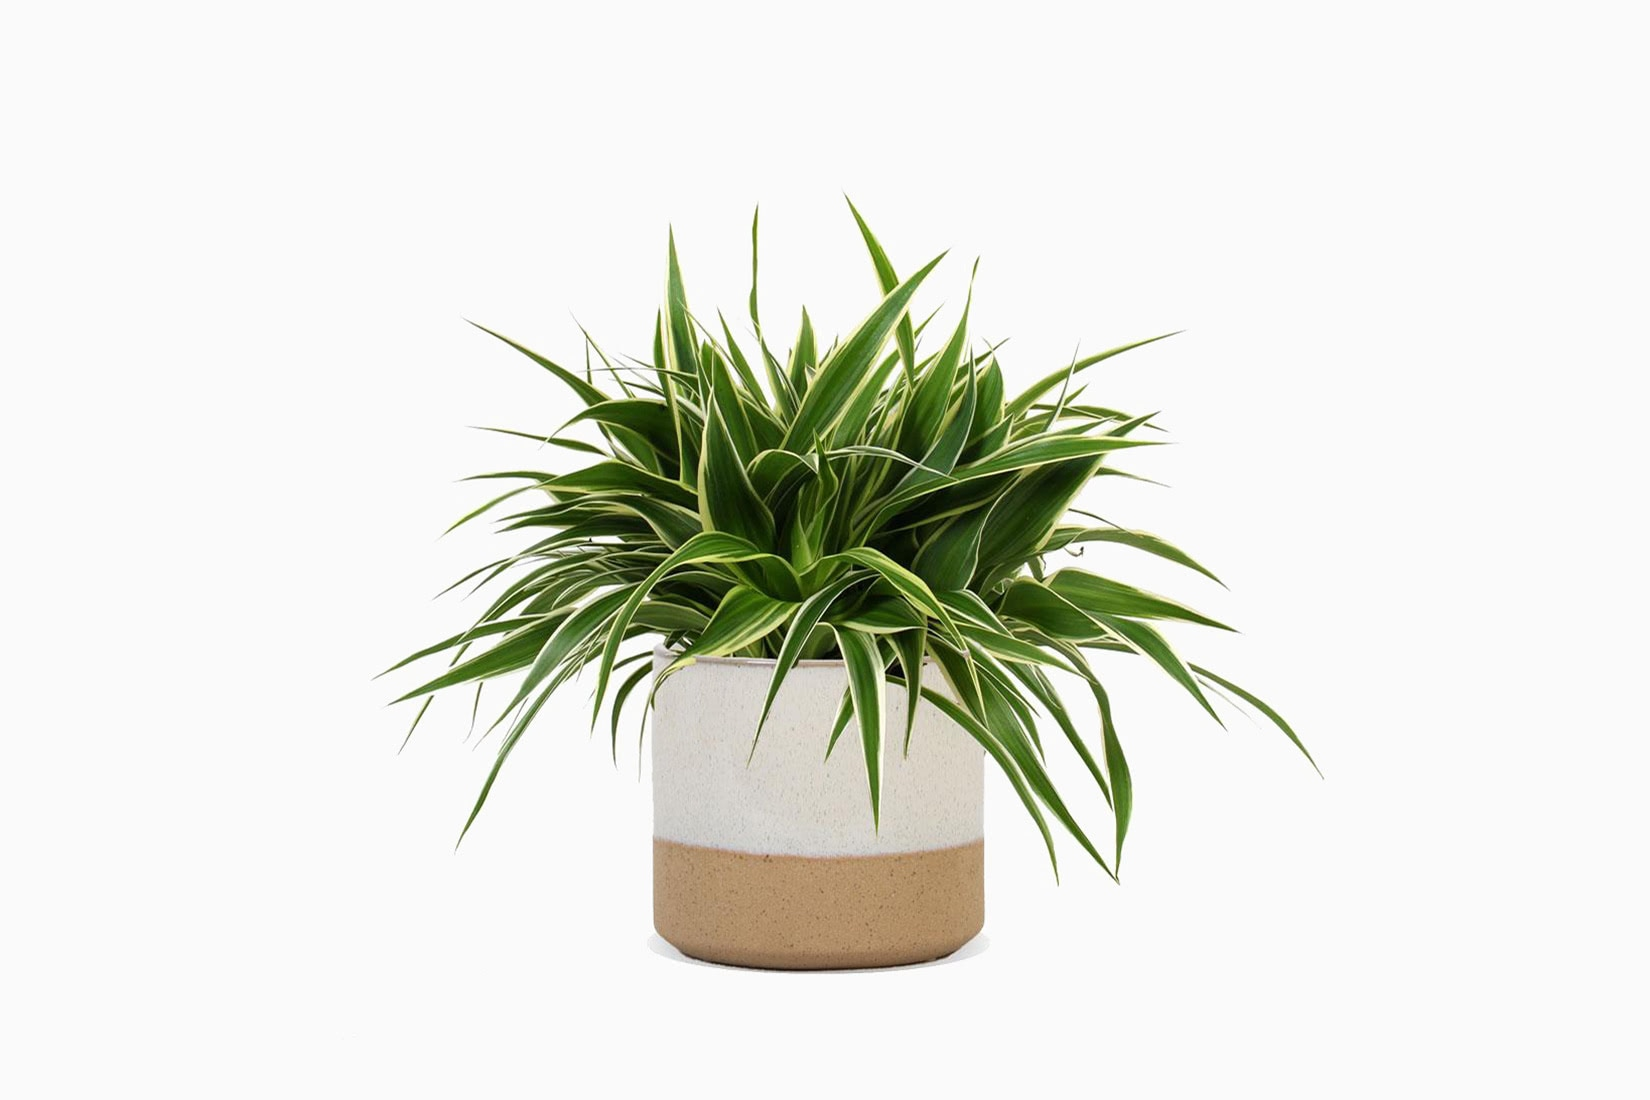 best indoor plants ocean spider plant - Luxe Digital